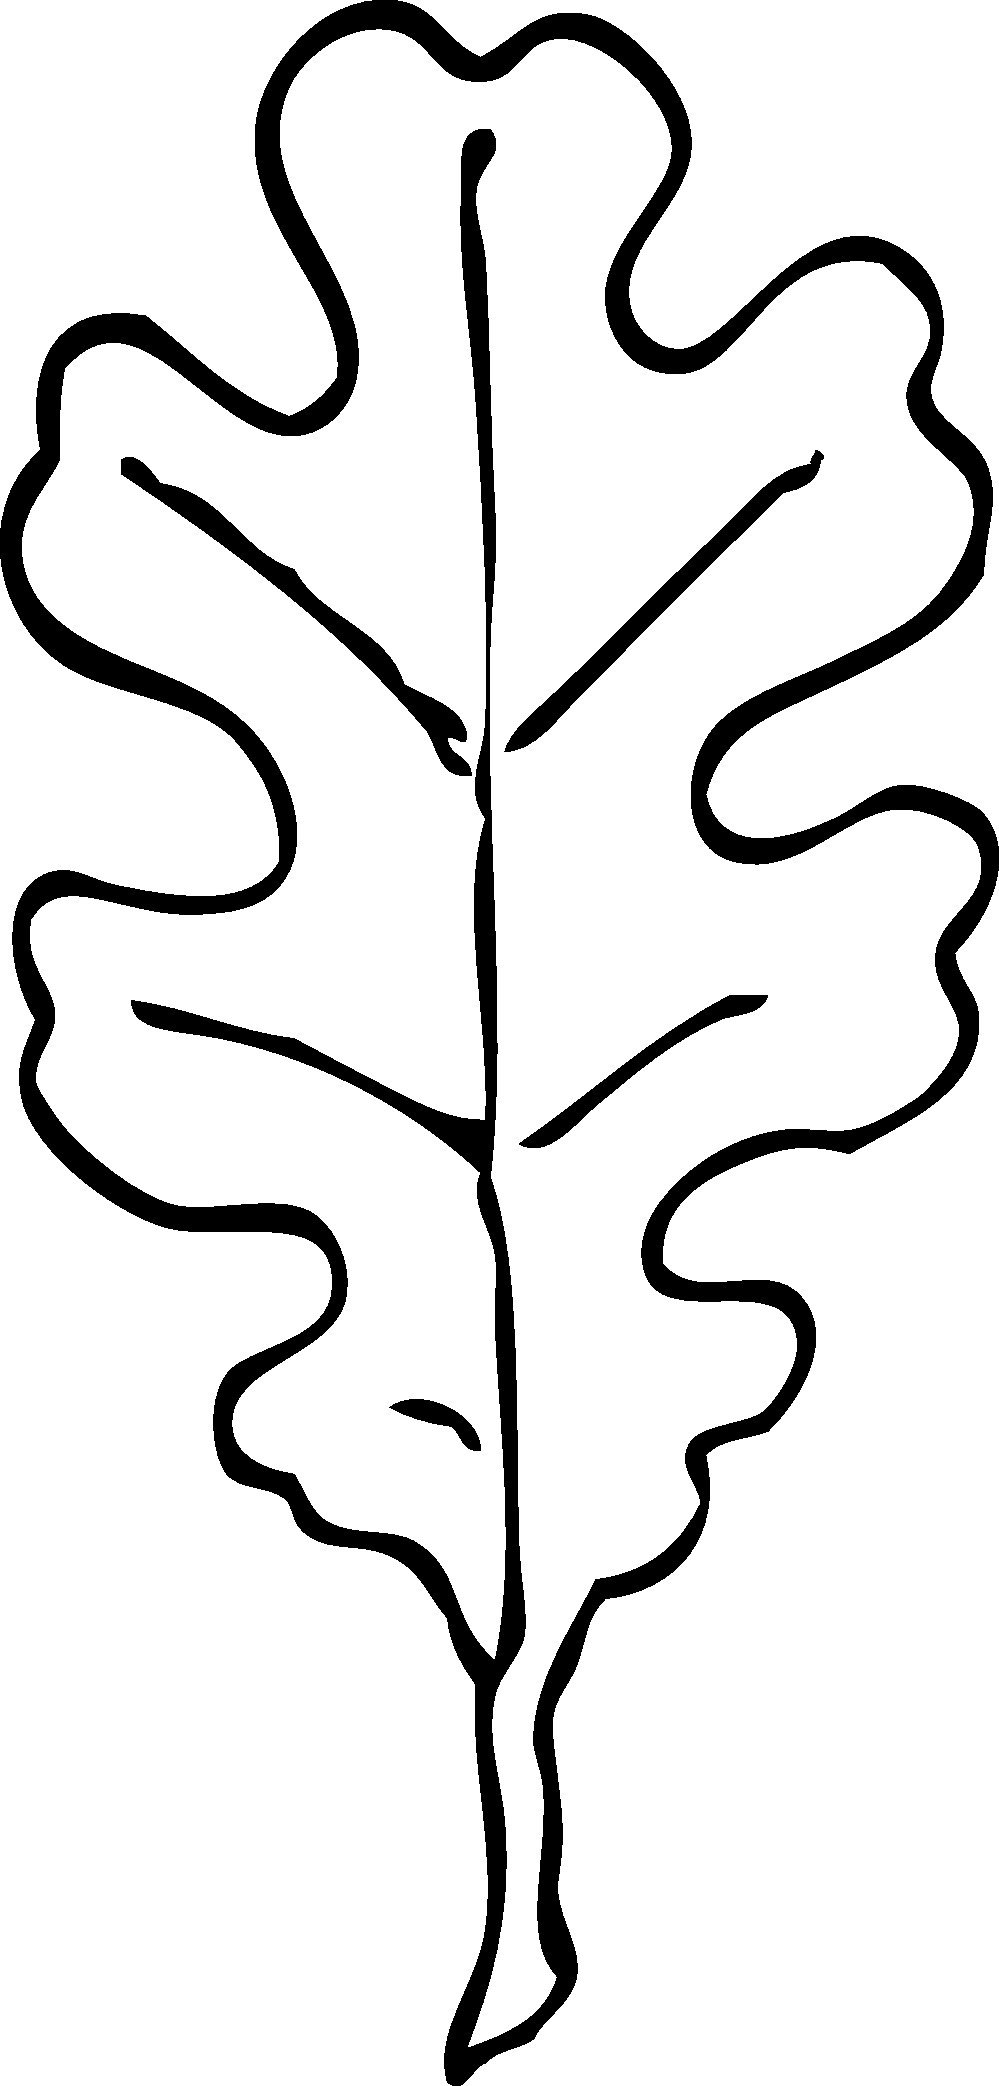 999x2086 Oak Leaf Nature Coloring Page For Kids Inspirational Leaf Template